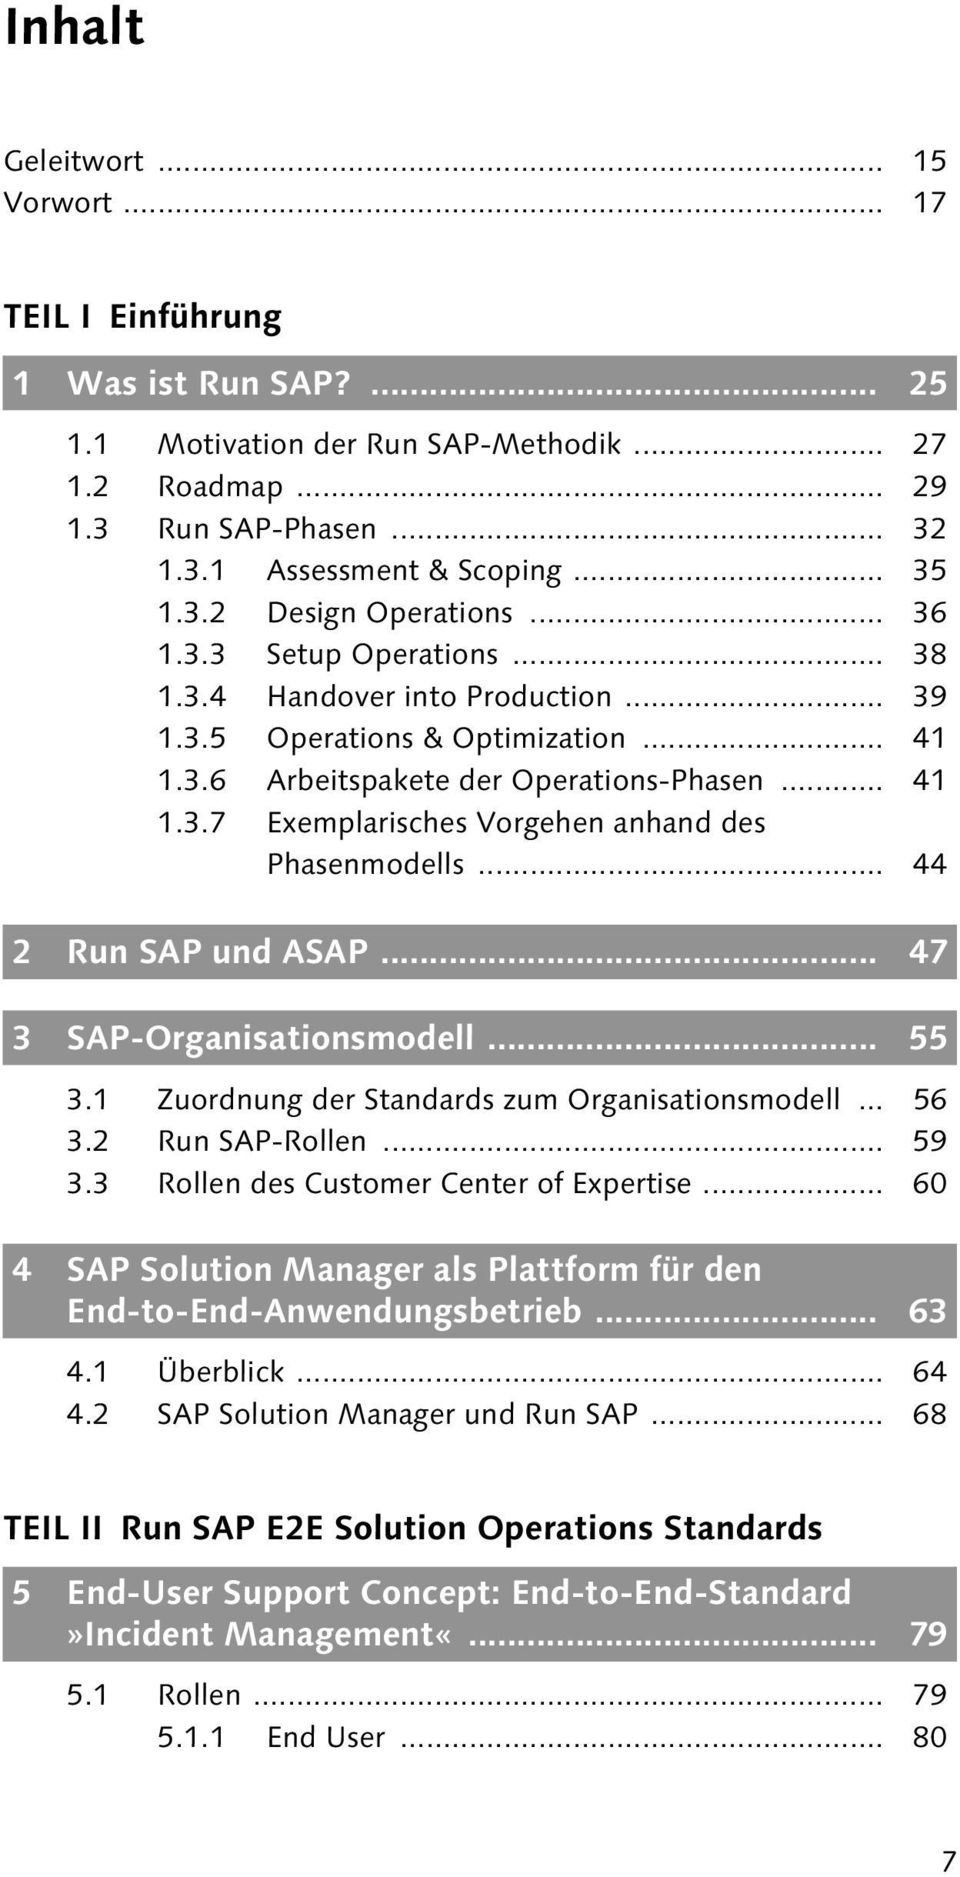 .. 44 2 Run SAP und ASAP... 47 3 SAP-Organisationsmodell... 55 3.1 Zuordnung der Standards zum Organisationsmodell... 56 3.2 Run SAP-Rollen... 59 3.3 Rollen des Customer Center of Expertise.